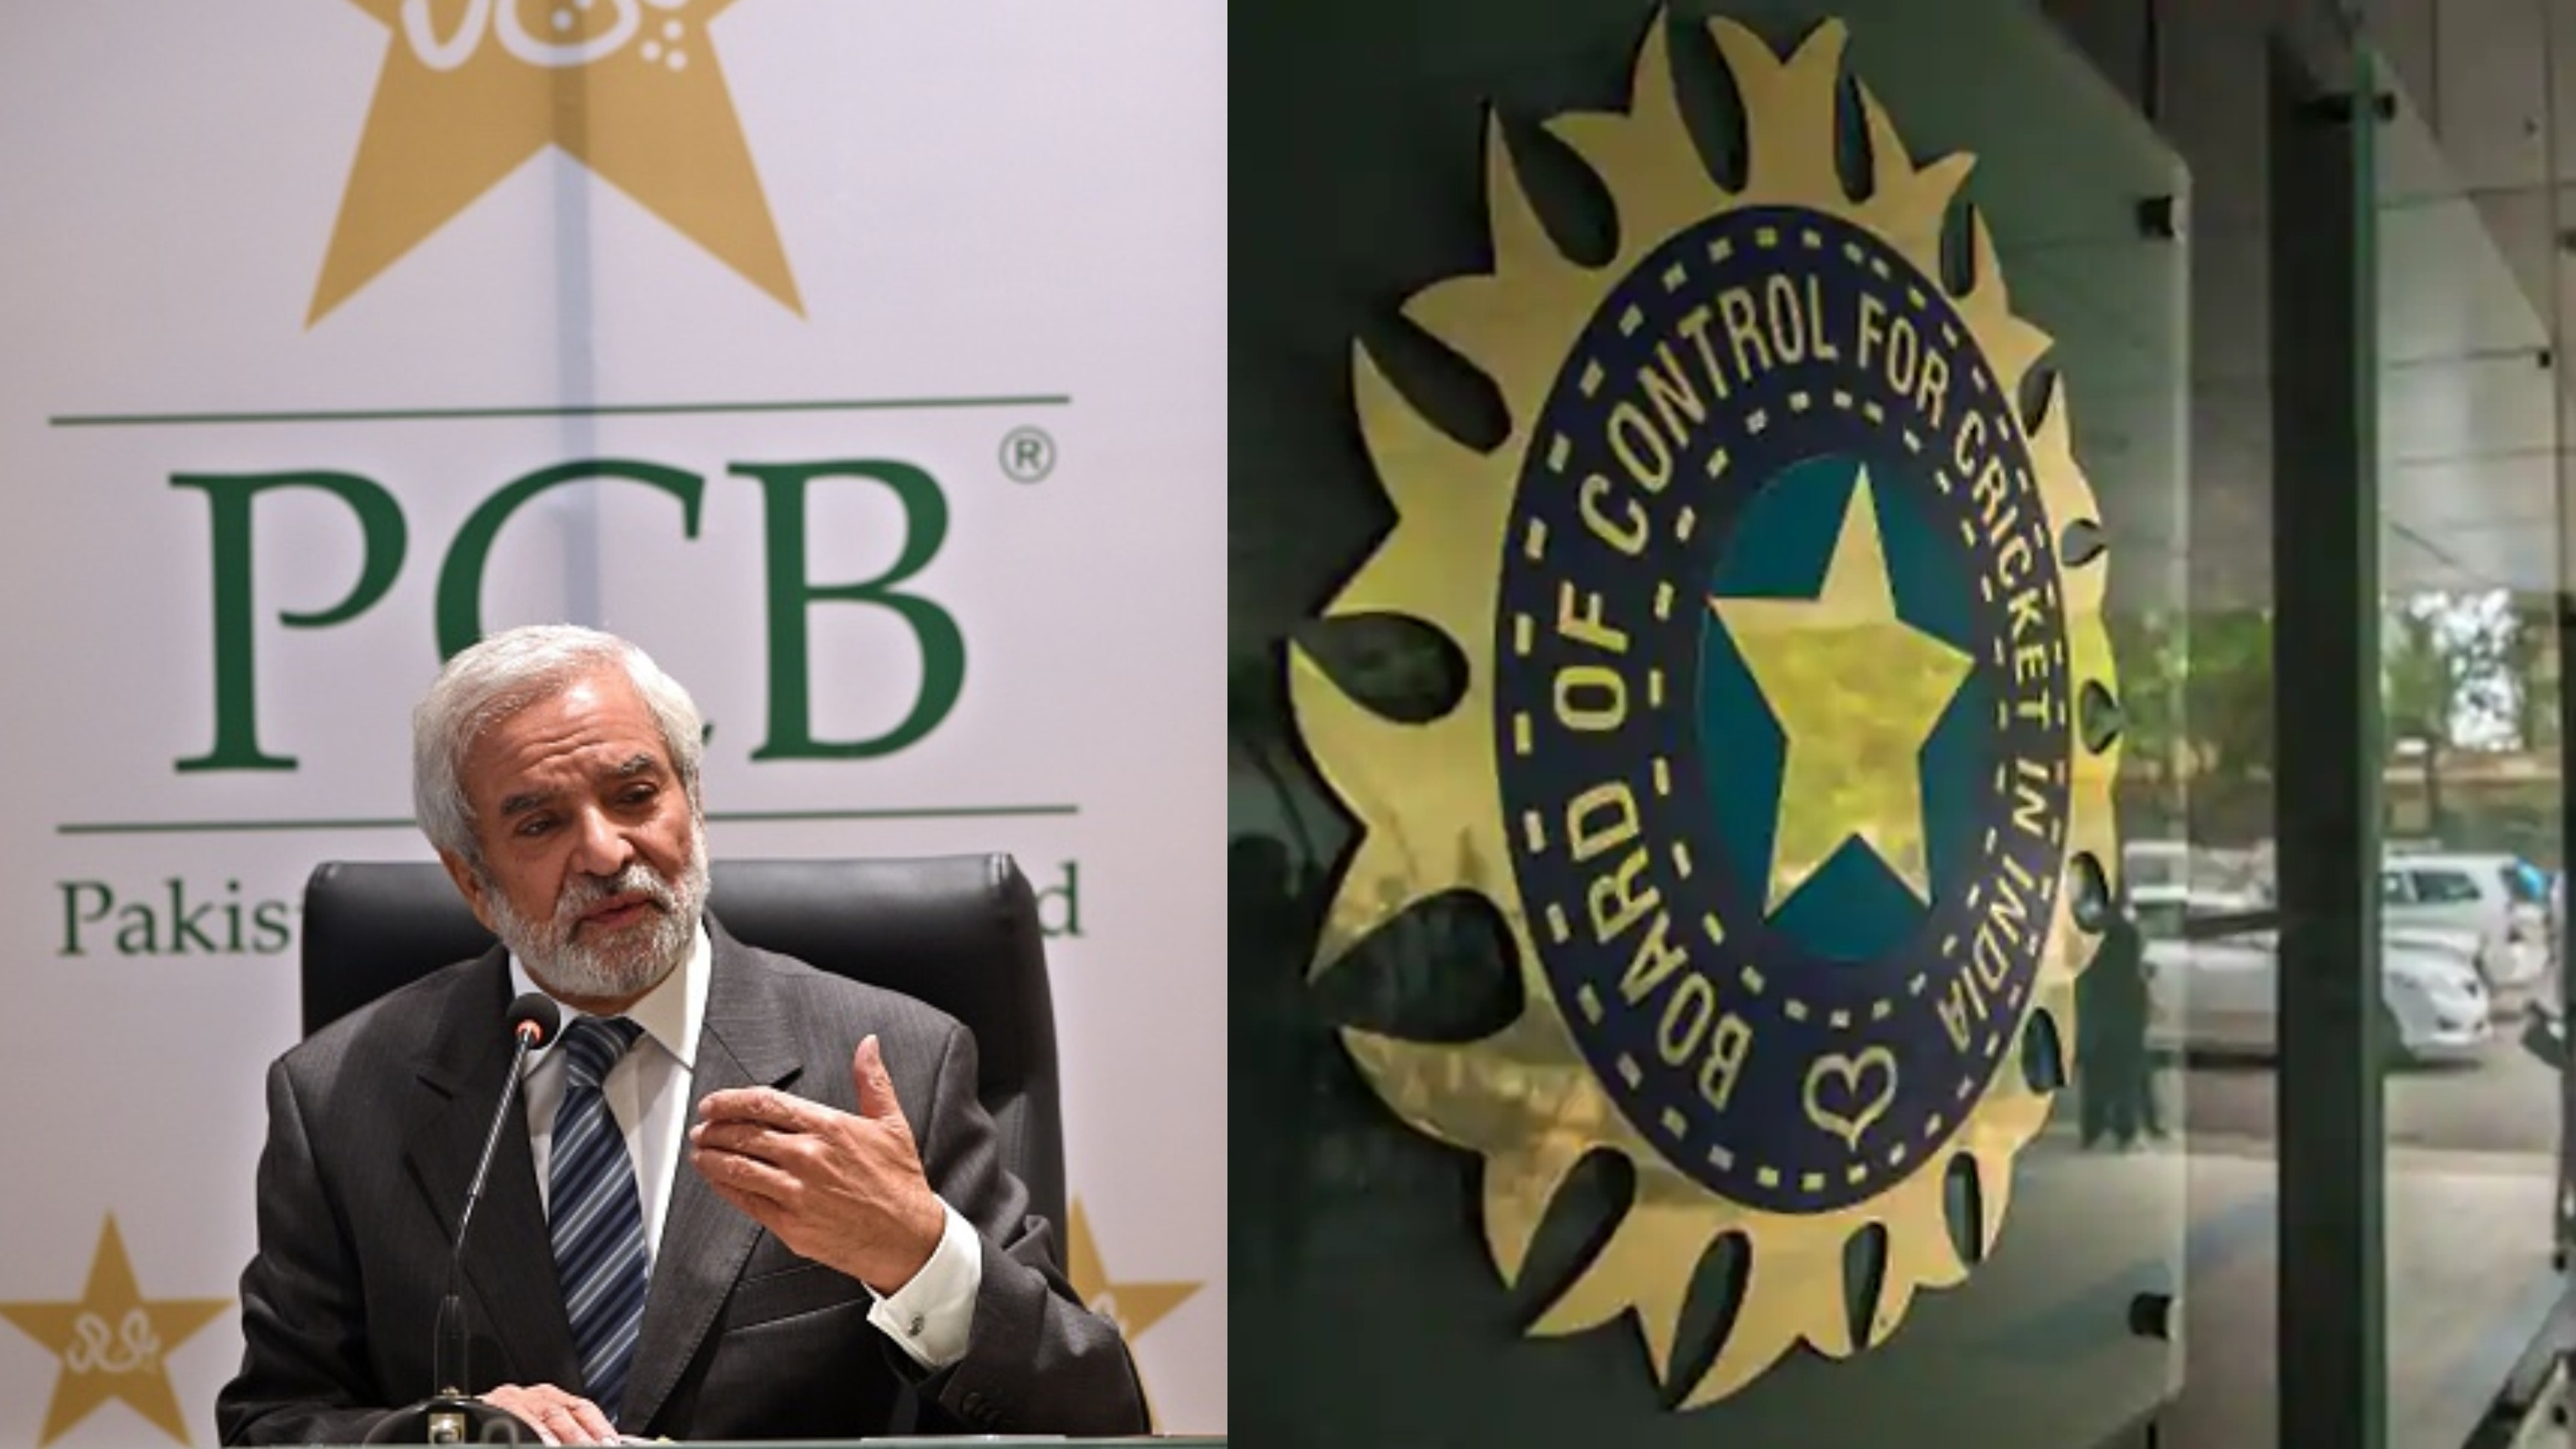 PCB chief Ehsan Mani vows to continue fight against BCCI in legal case